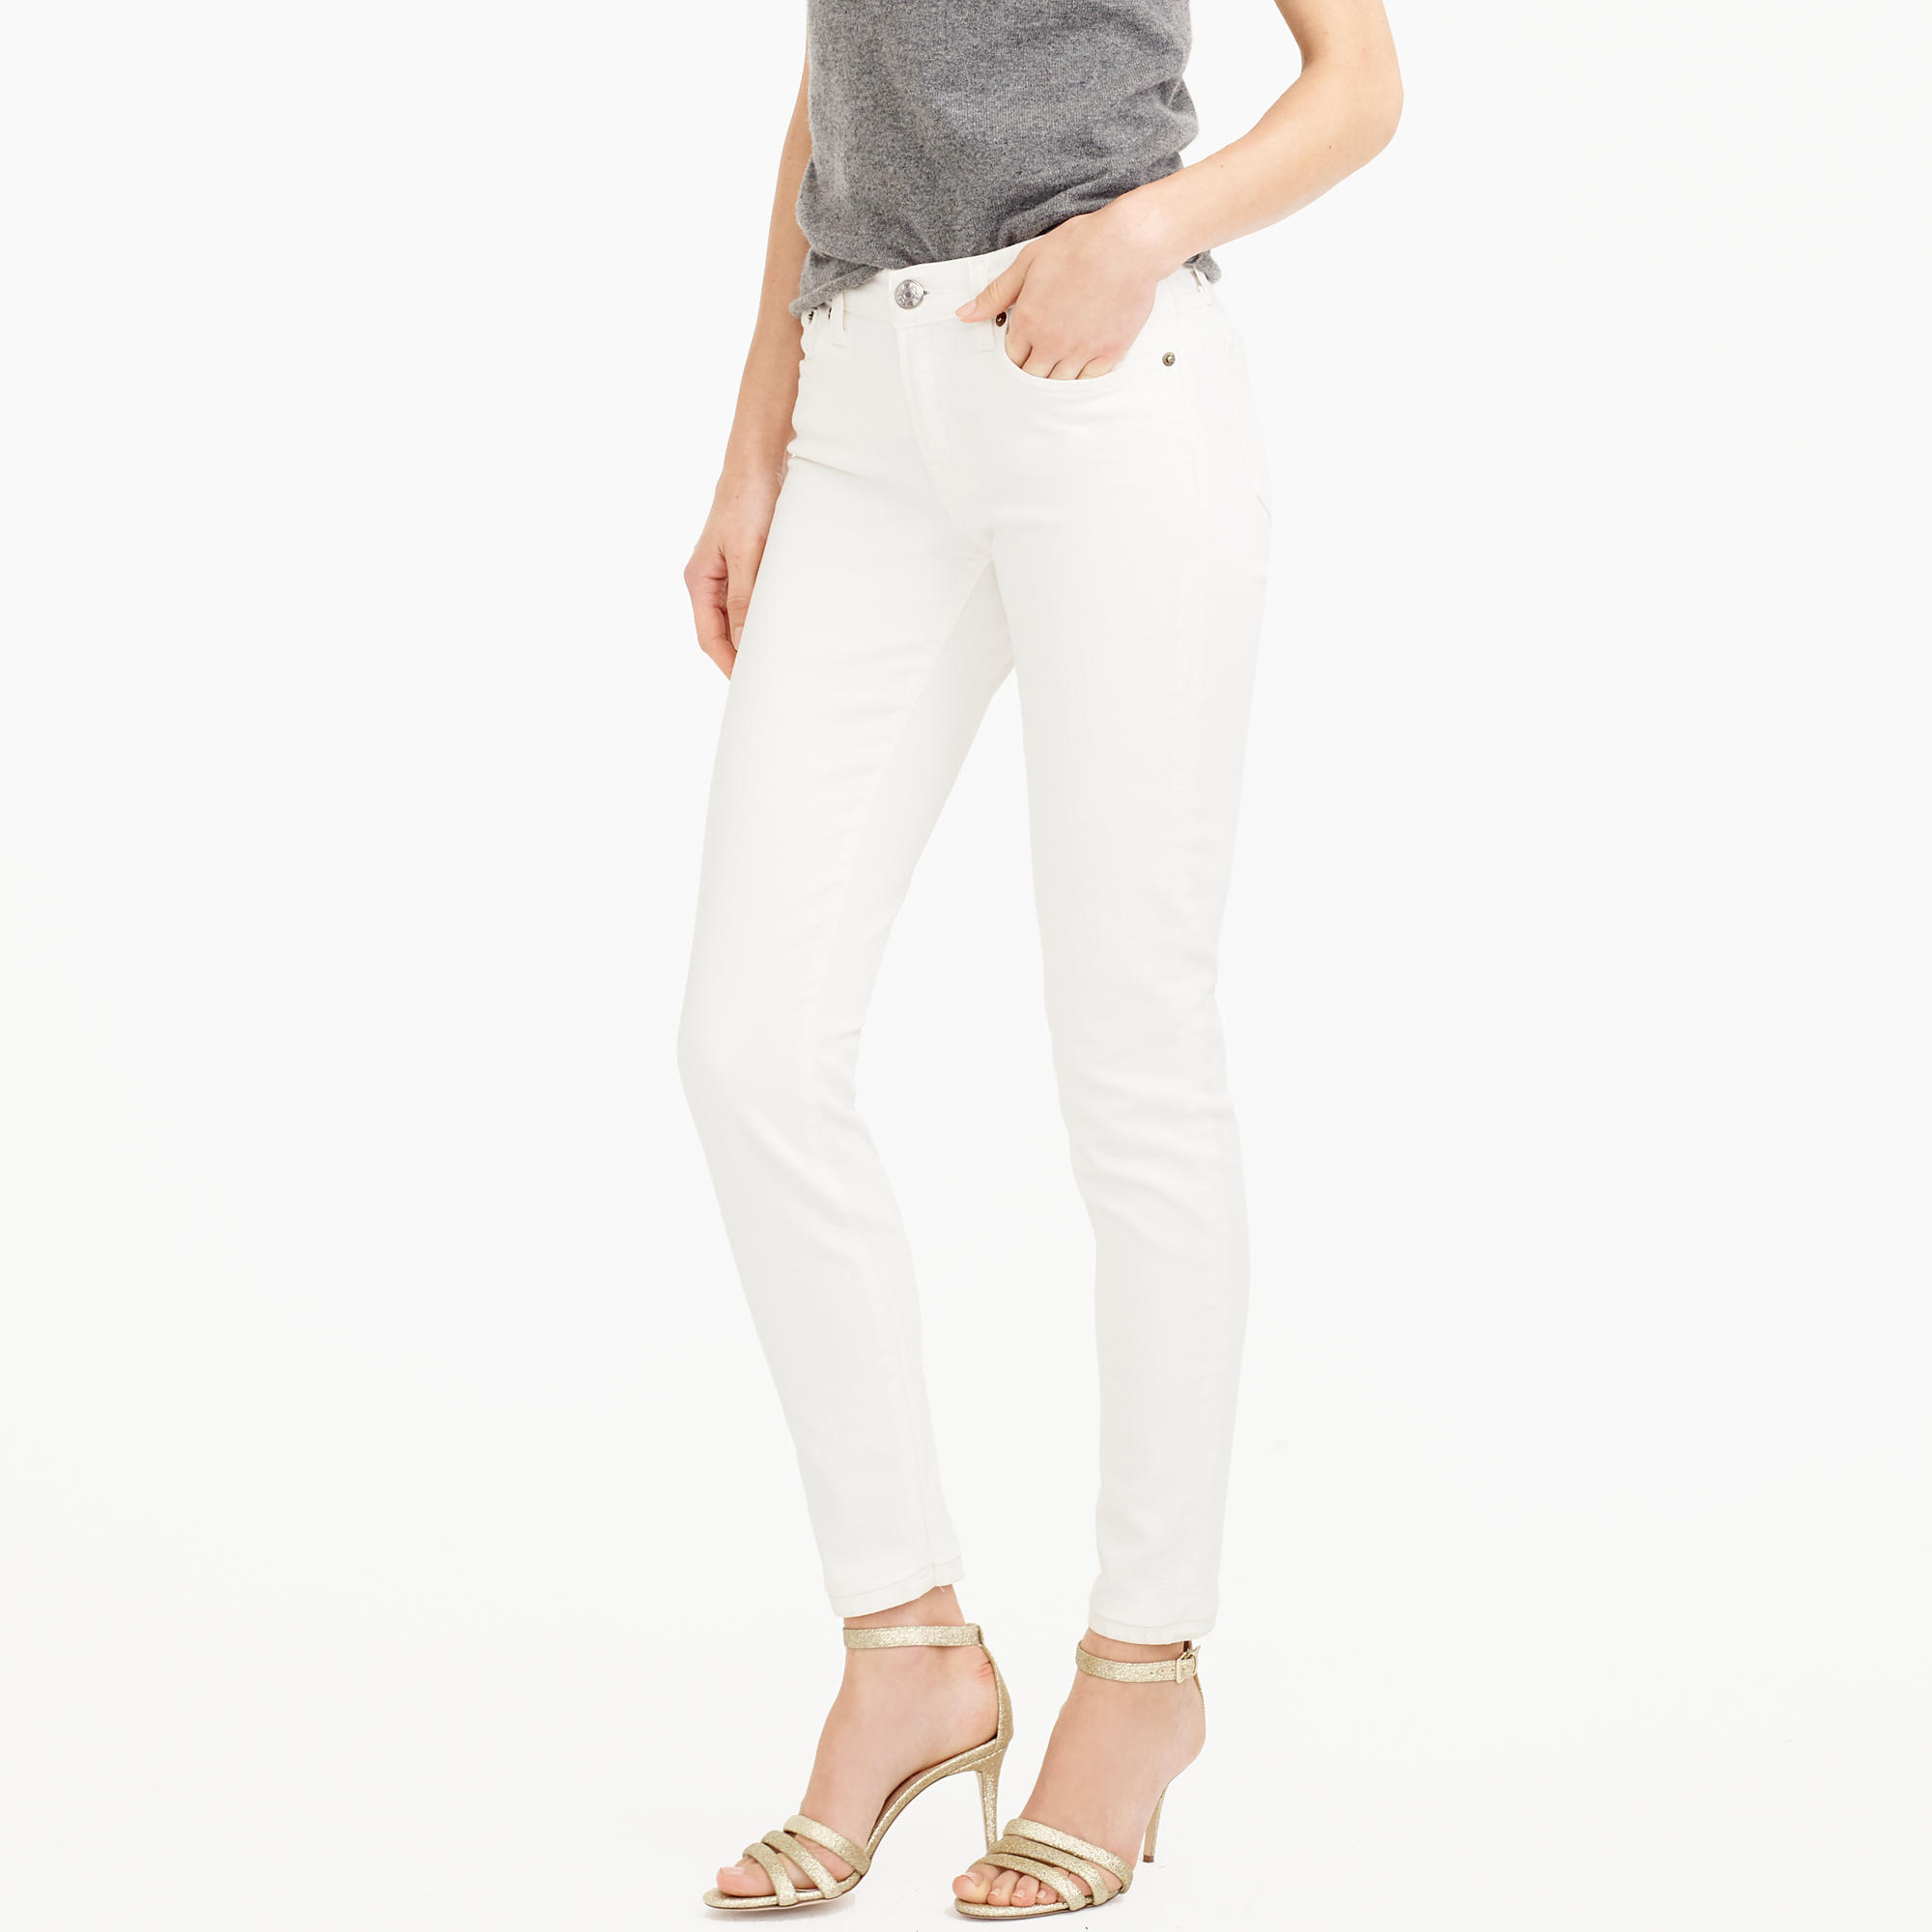 Toothpick Jean In White : Women's Jeans | J.Crew